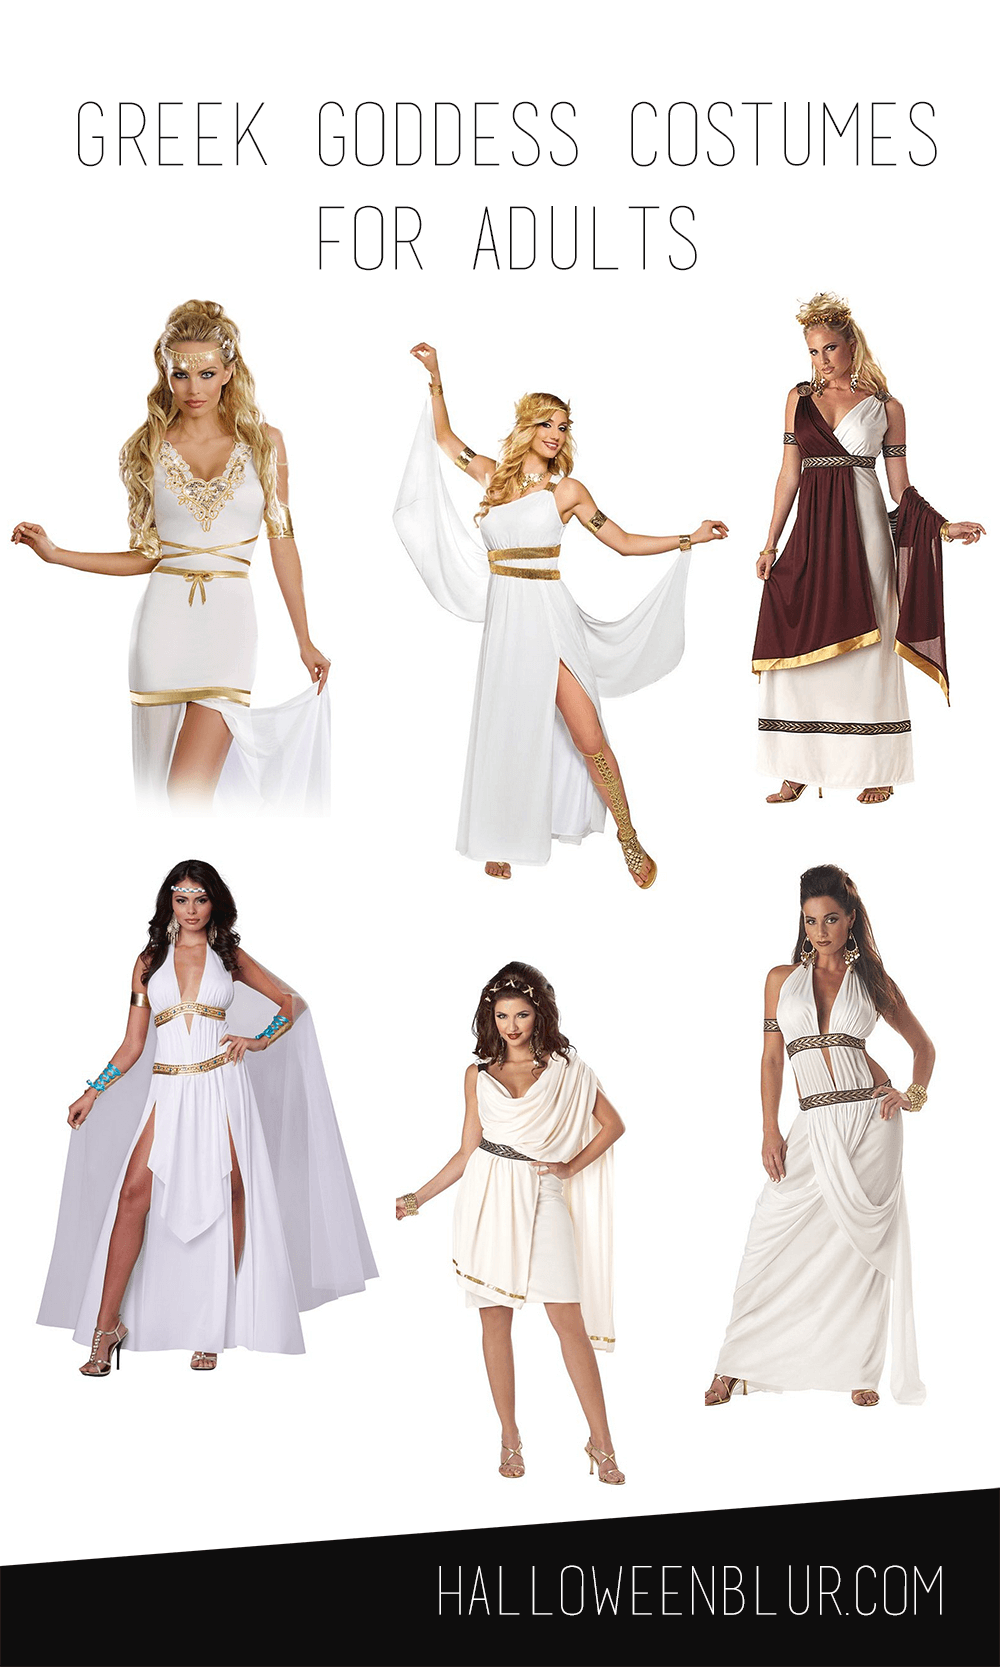 Greek goddess costumes for adults halloween pinterest greek greek goddess costumes for adults solutioingenieria Gallery